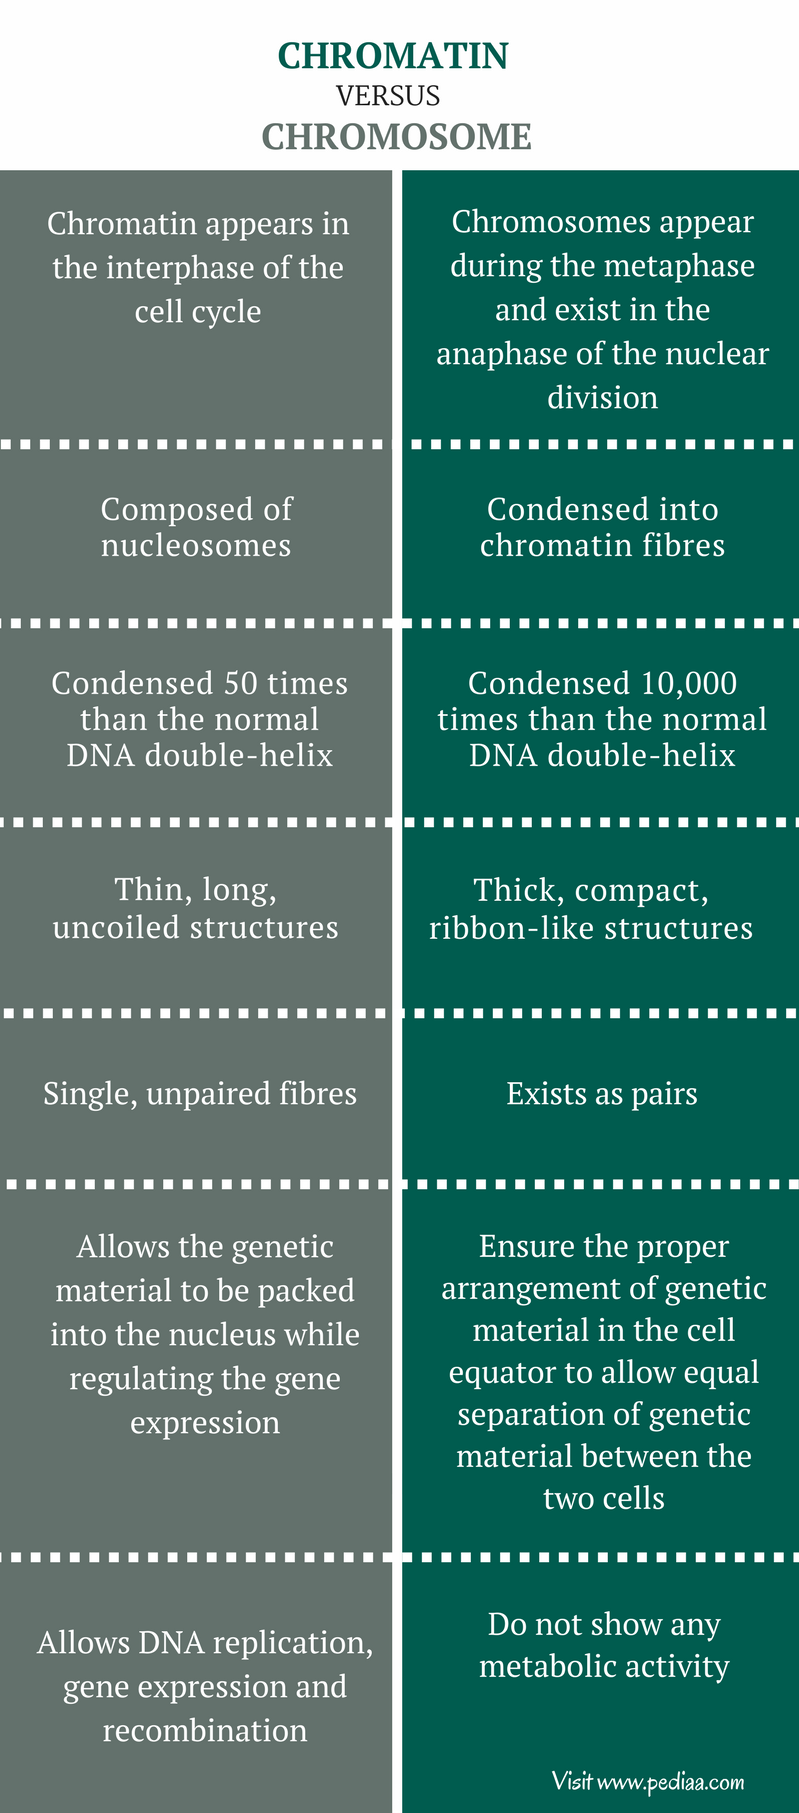 Difference Between Chromatin and Chromosome - Comparison Summary